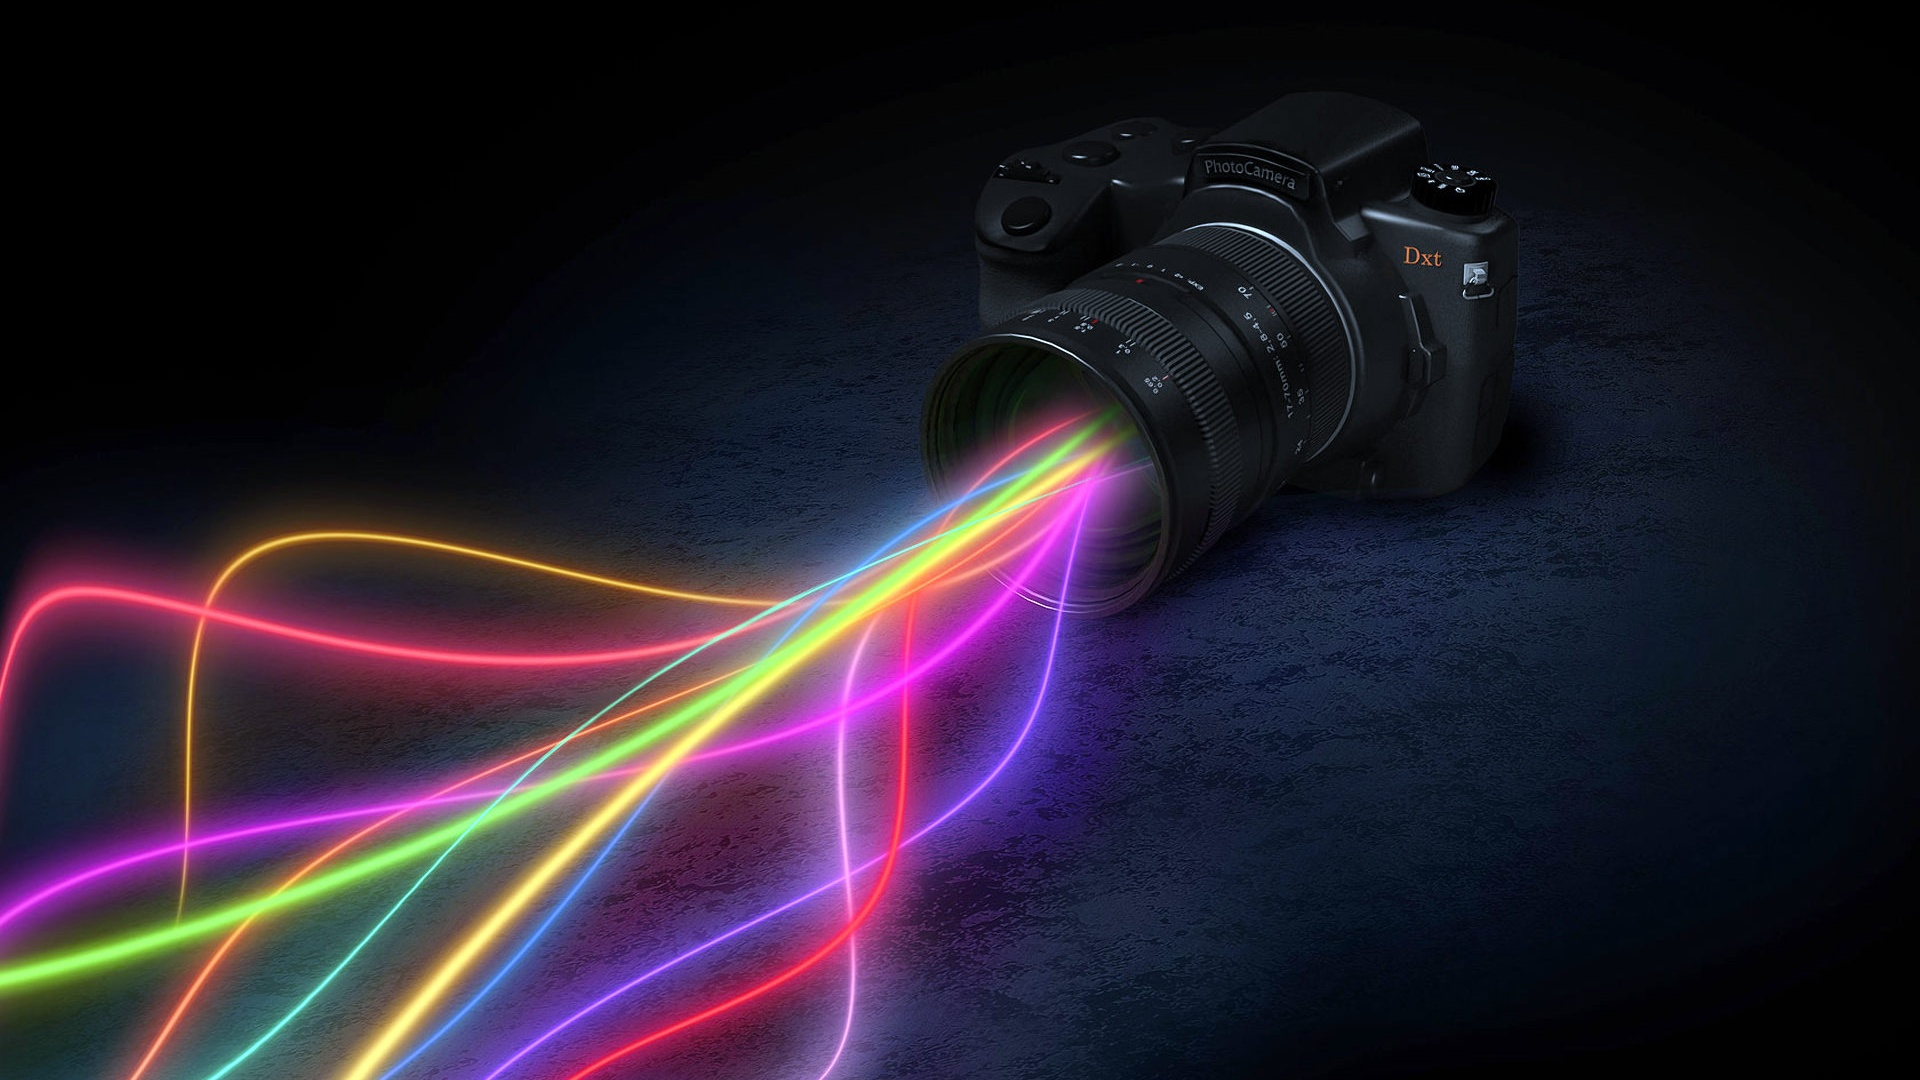 The Curious Cameras of the 3D TV Era Popular Photography 3d digital camera pictures